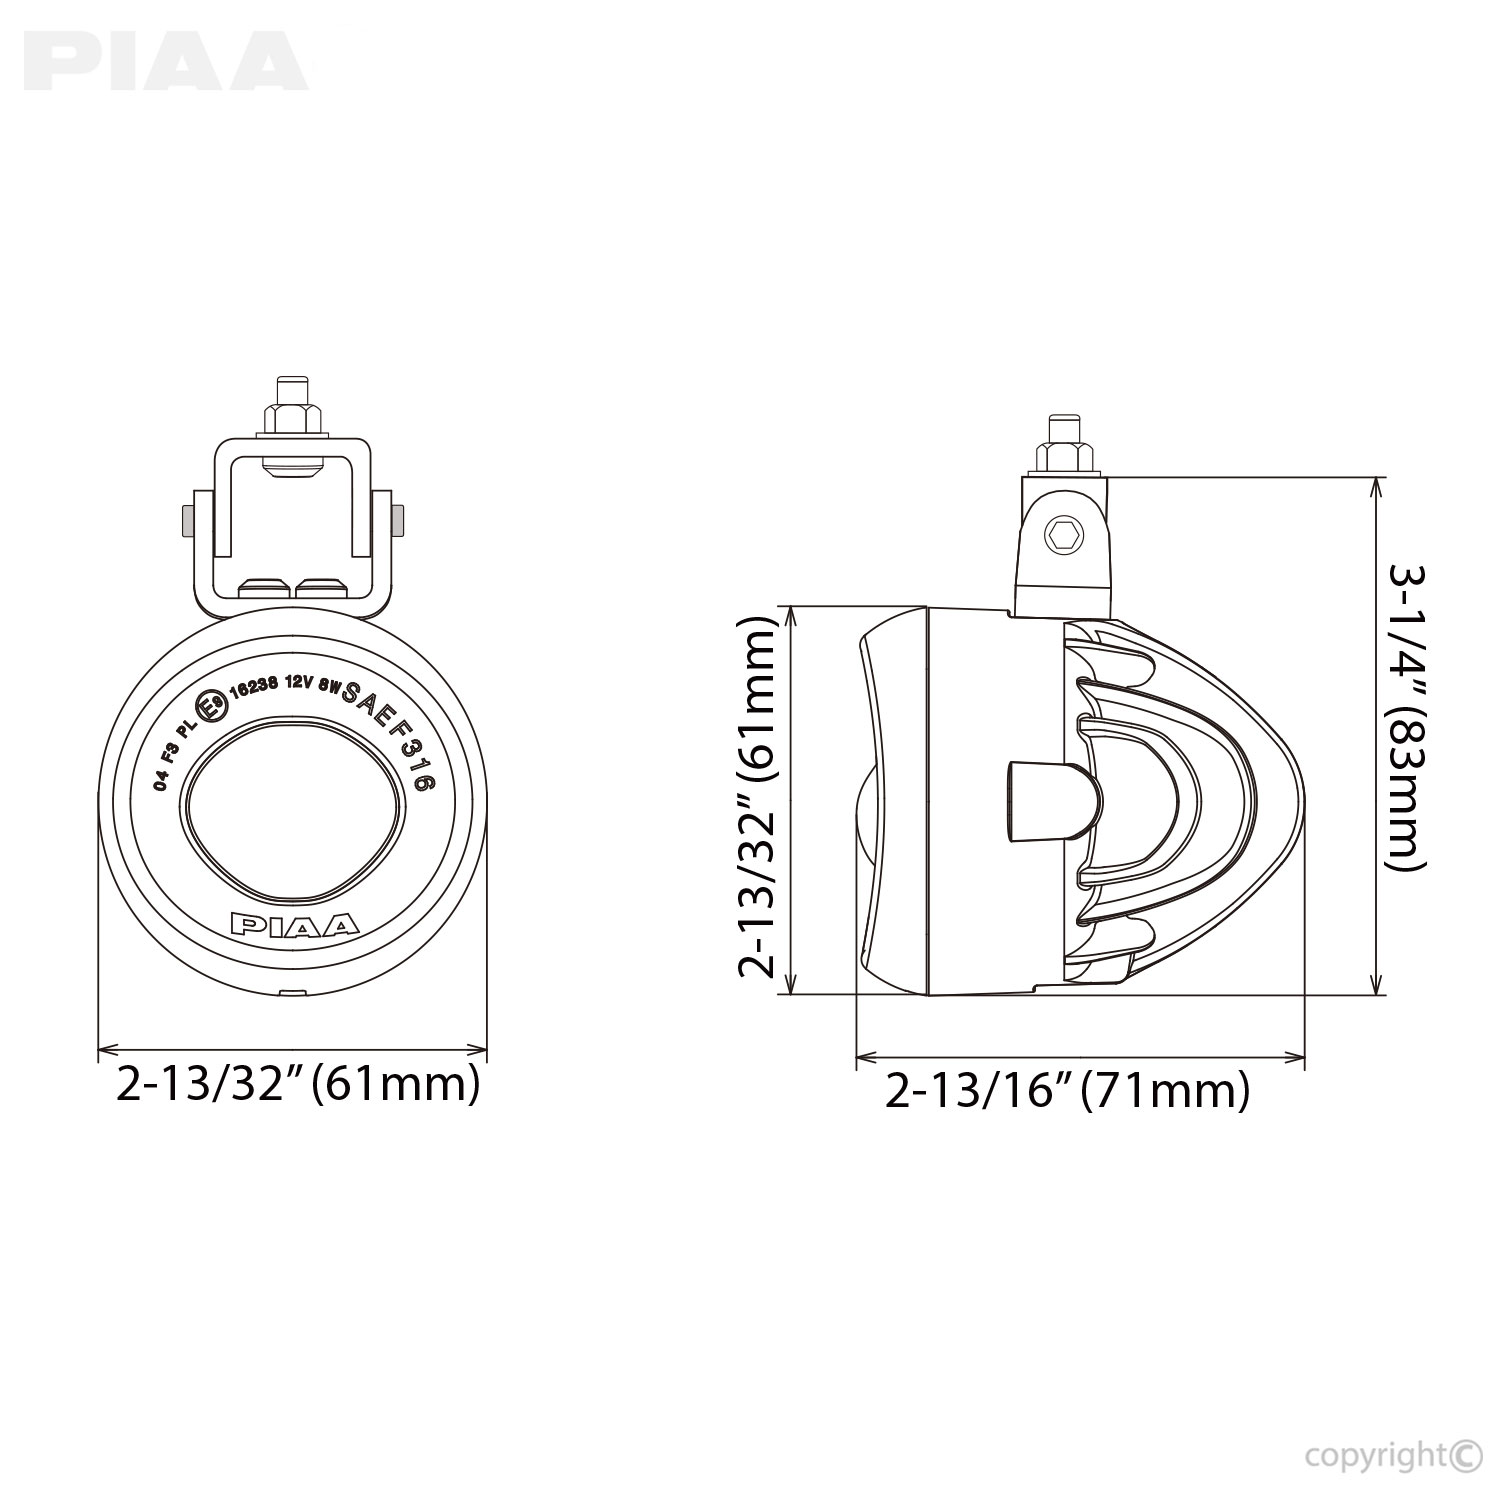 Wiring Diagram For Piaa Lights Wiring Diagram And Schematics